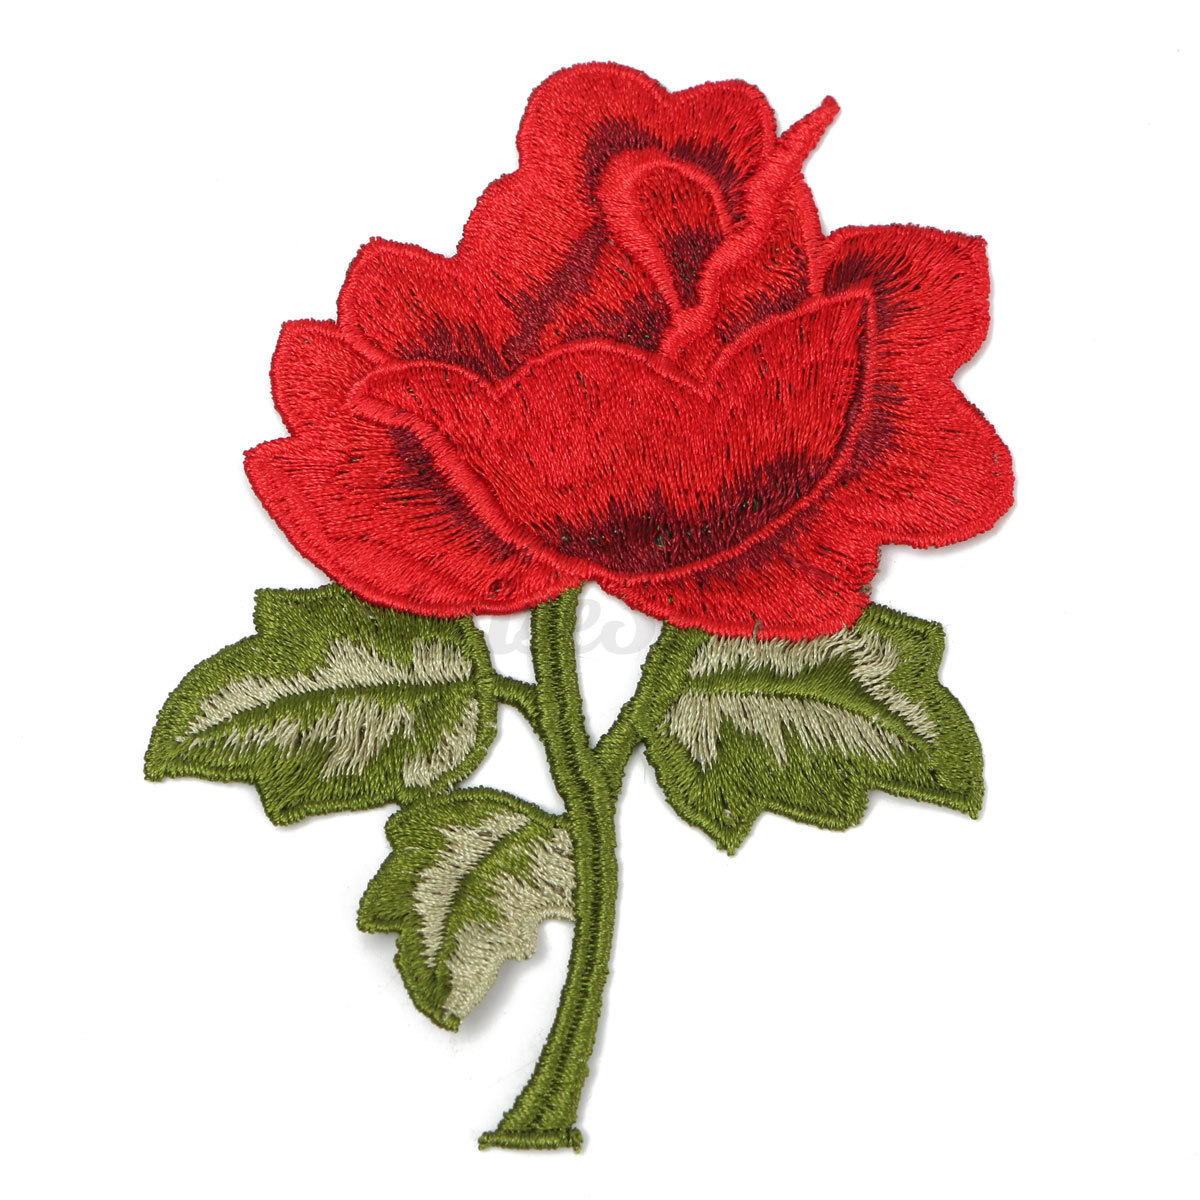 Rose flower embroidered sew iron on patch sewing clothes